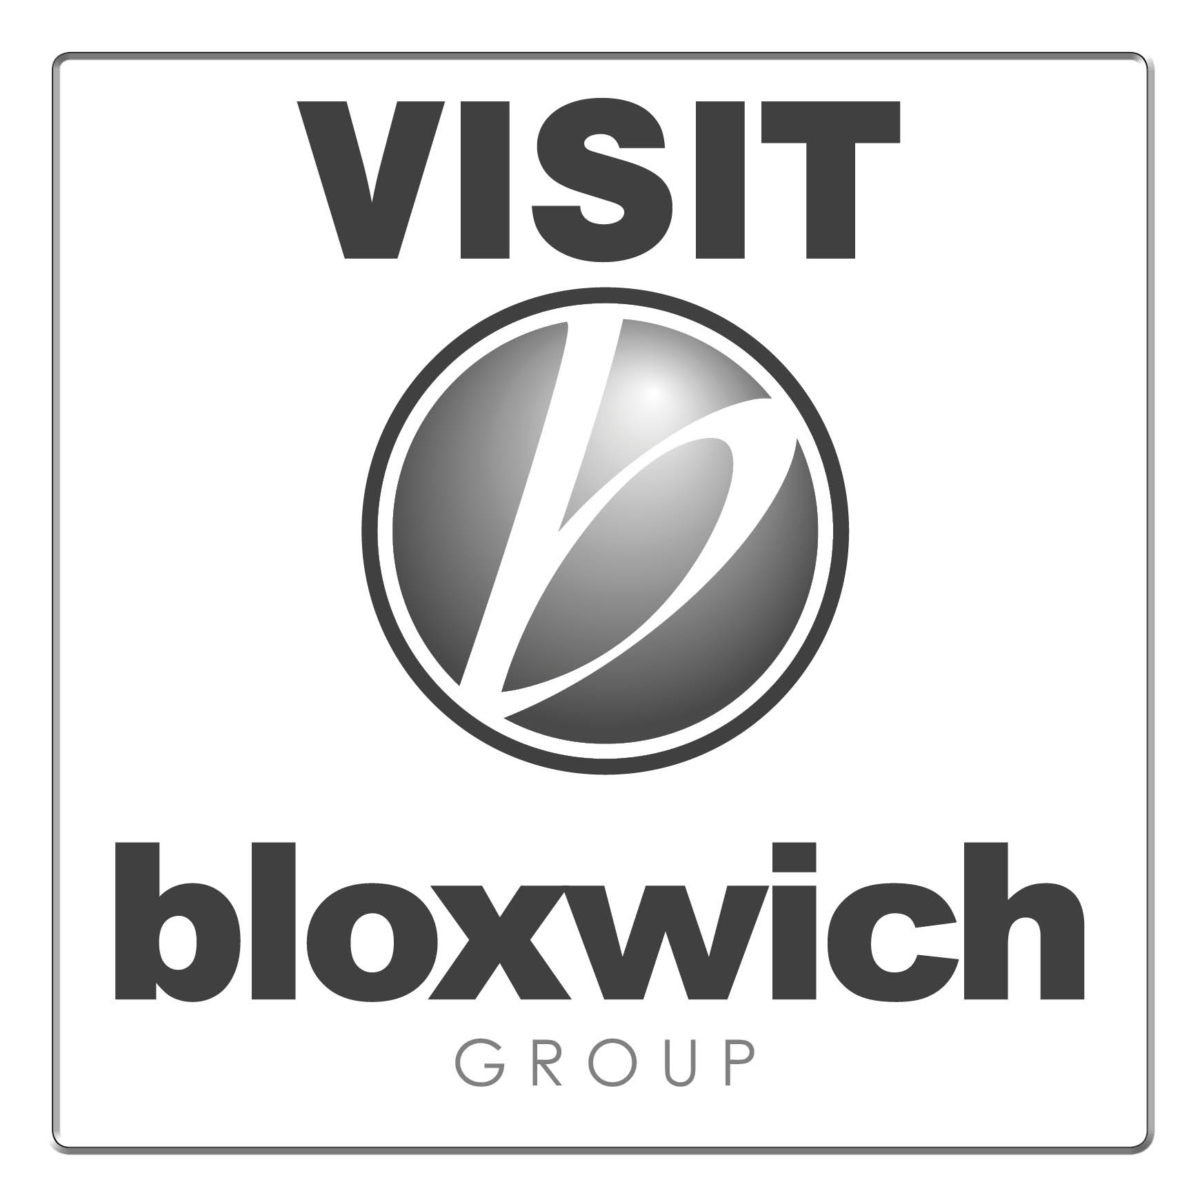 Click here to visit the new bloxwich group website